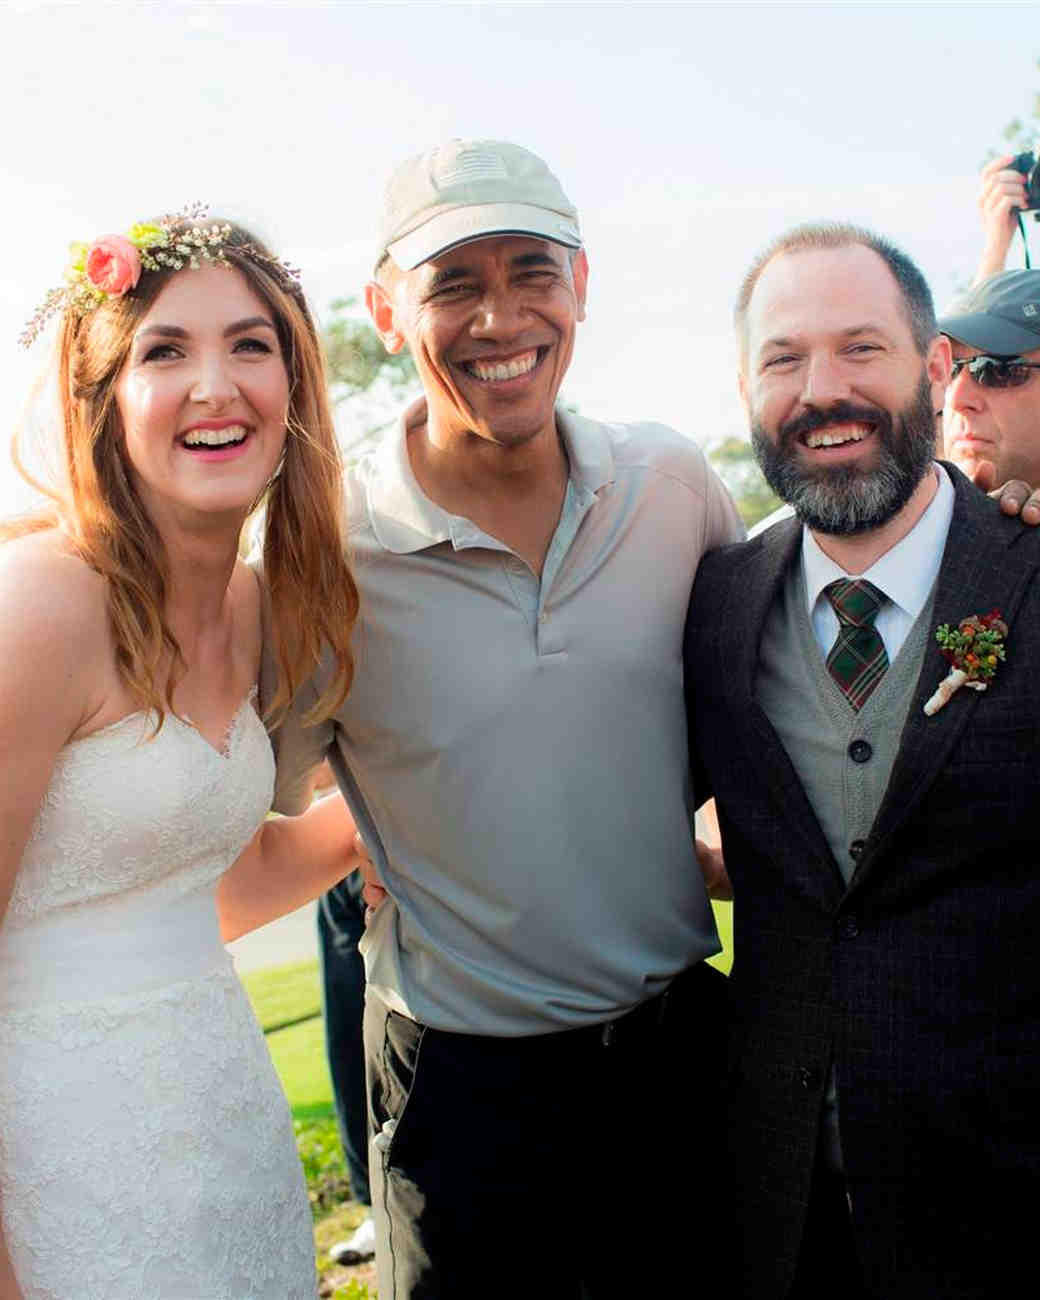 celebrity-wedding-crashers-barack-obama-1215.jpg